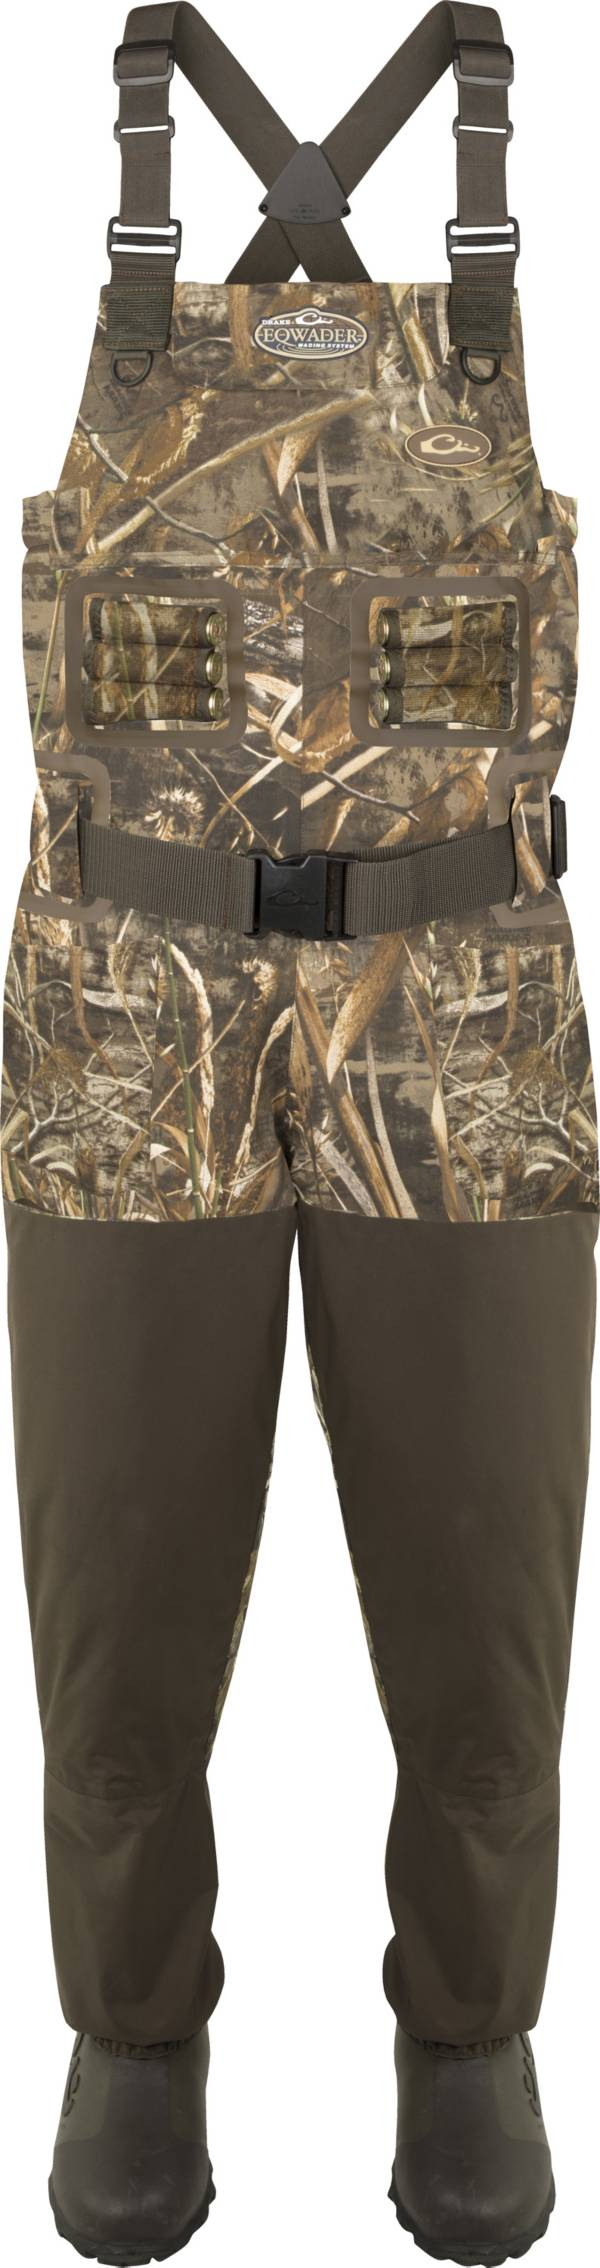 Drake Waterfowl Eqwader 1600 Breathable Chest Waders with Tear-Away Liner product image